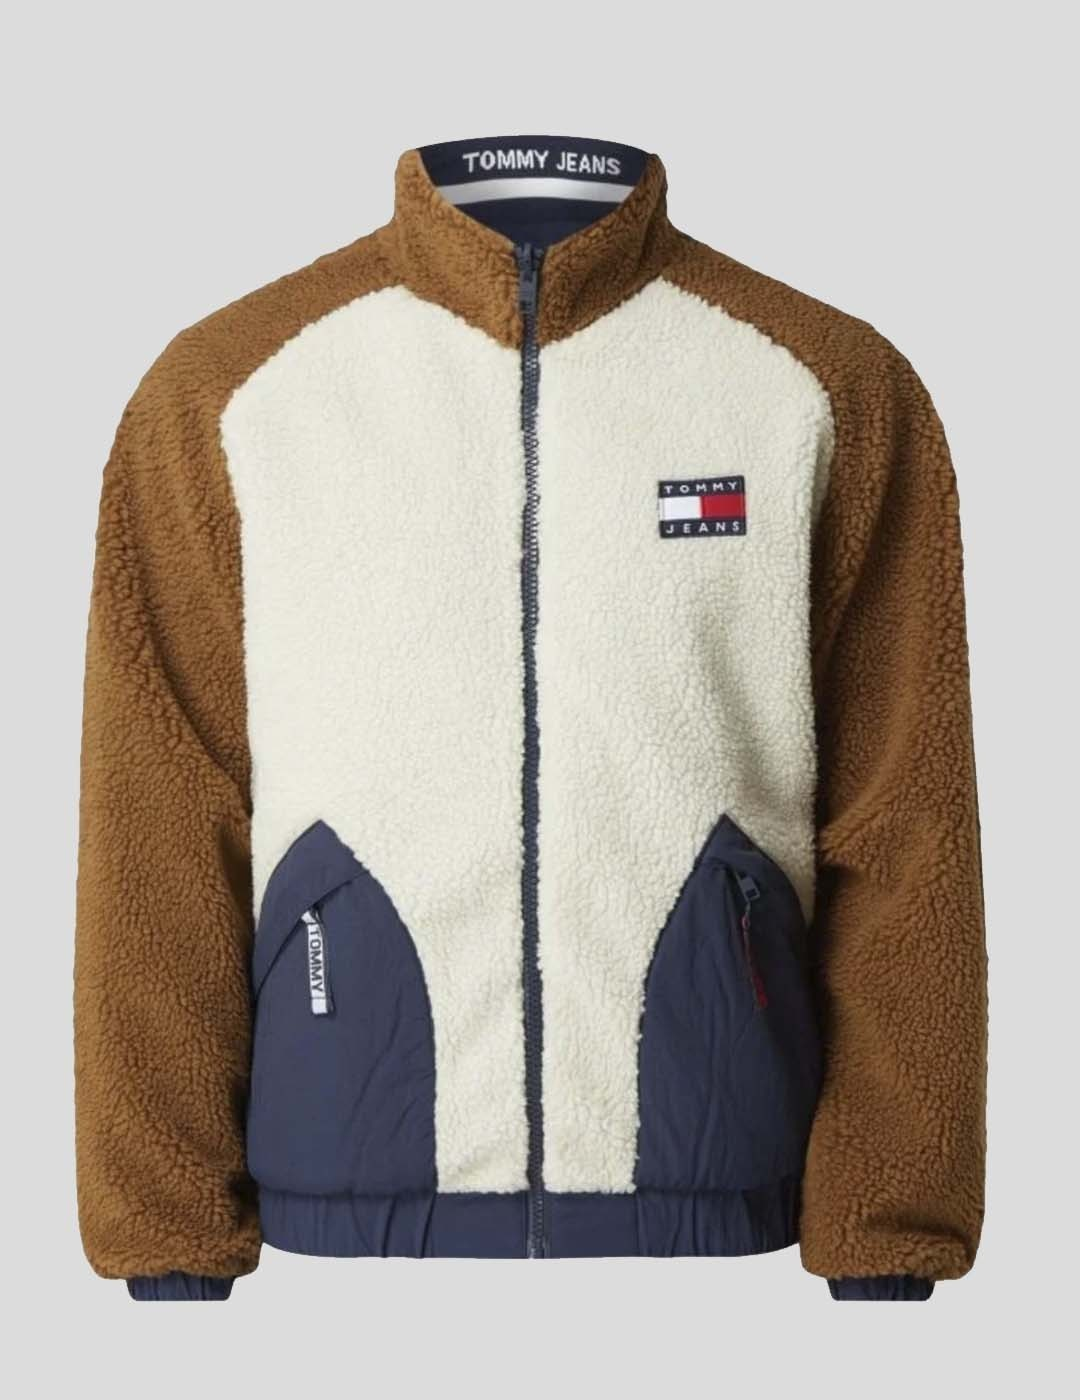 CHAQUETA TOMMY JEANS REVERSIBLE RETRO SHERPA JACKET BEIGE BROWN NAVY